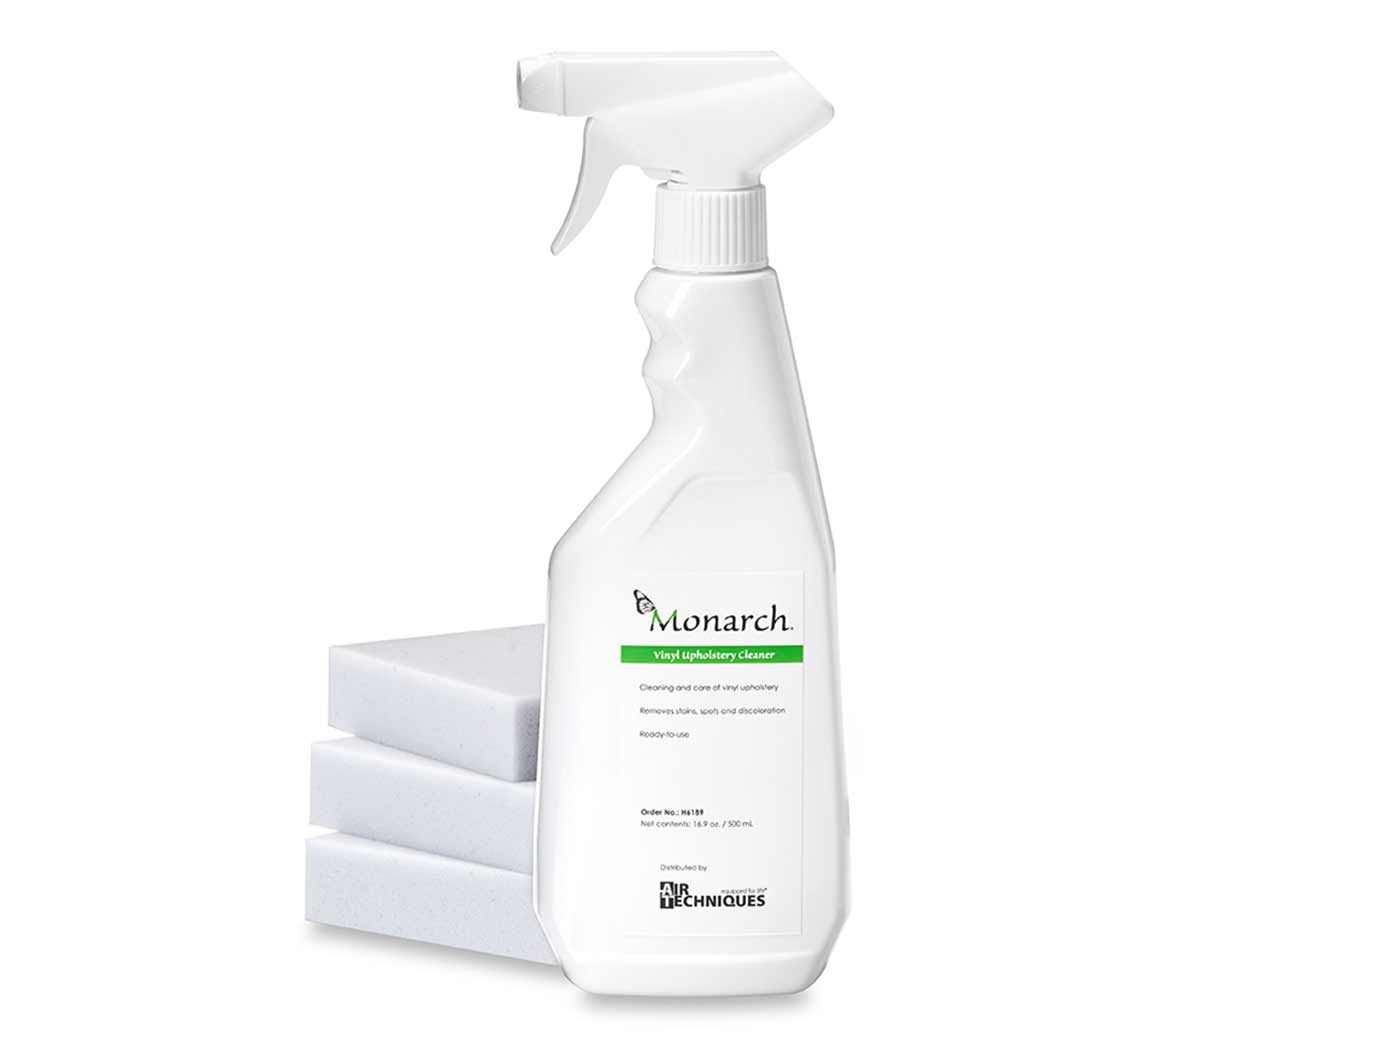 sofa disinfectant spray chester barato barcelona surface disinfectants and cleaners monarch vinyl upholstery